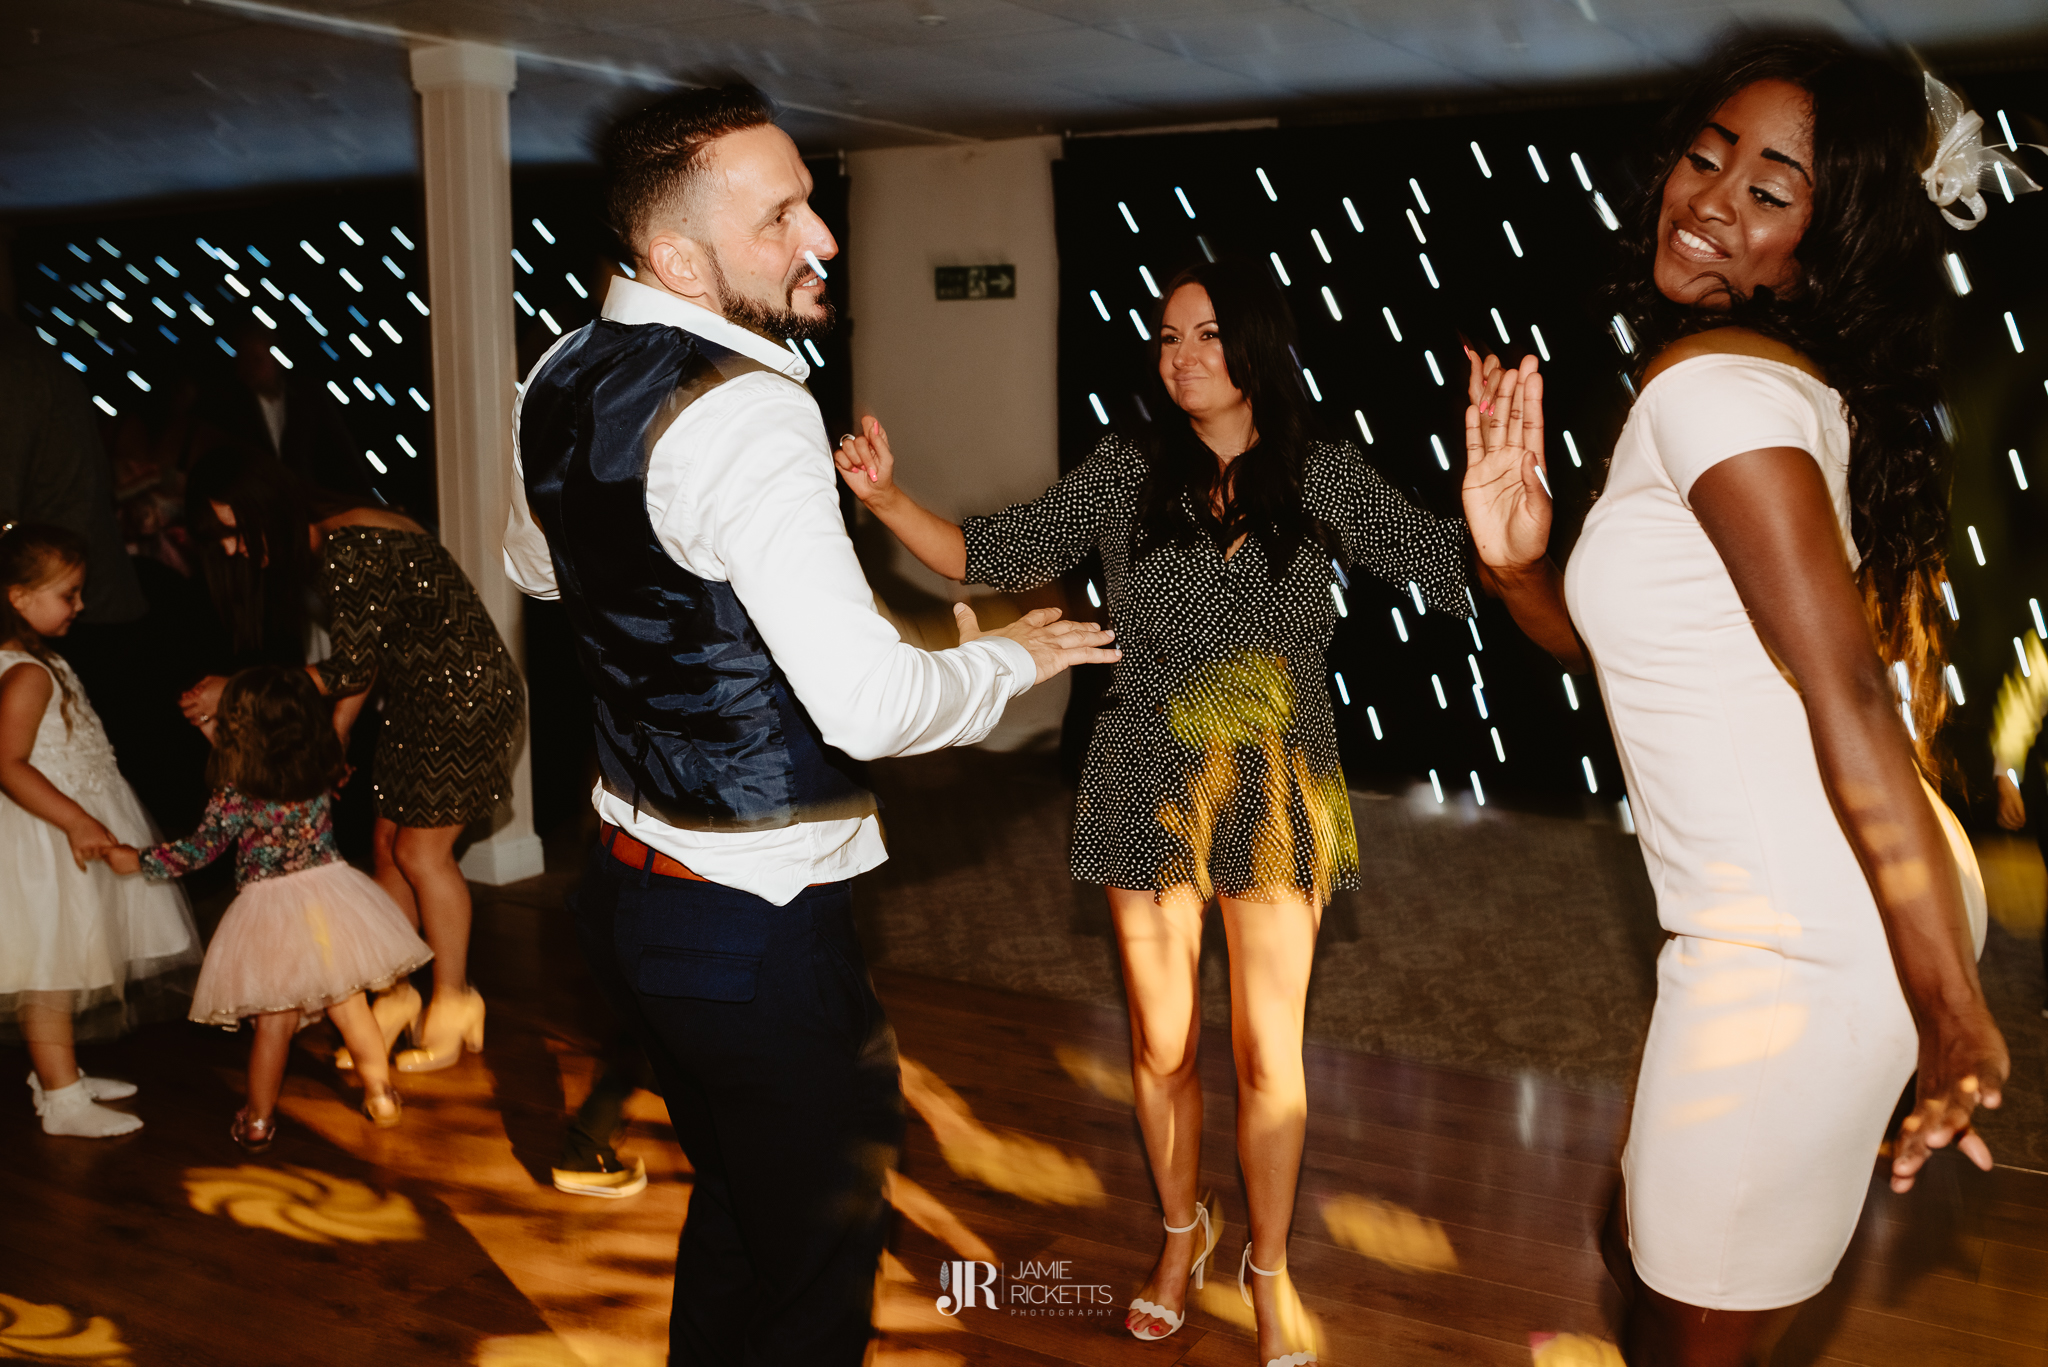 Wroxeter-Hotel-Wedding-Photography-In-Shropshire-By-Shropshire-Wedding-Photographer-Jamie-Ricketts-228.JPG